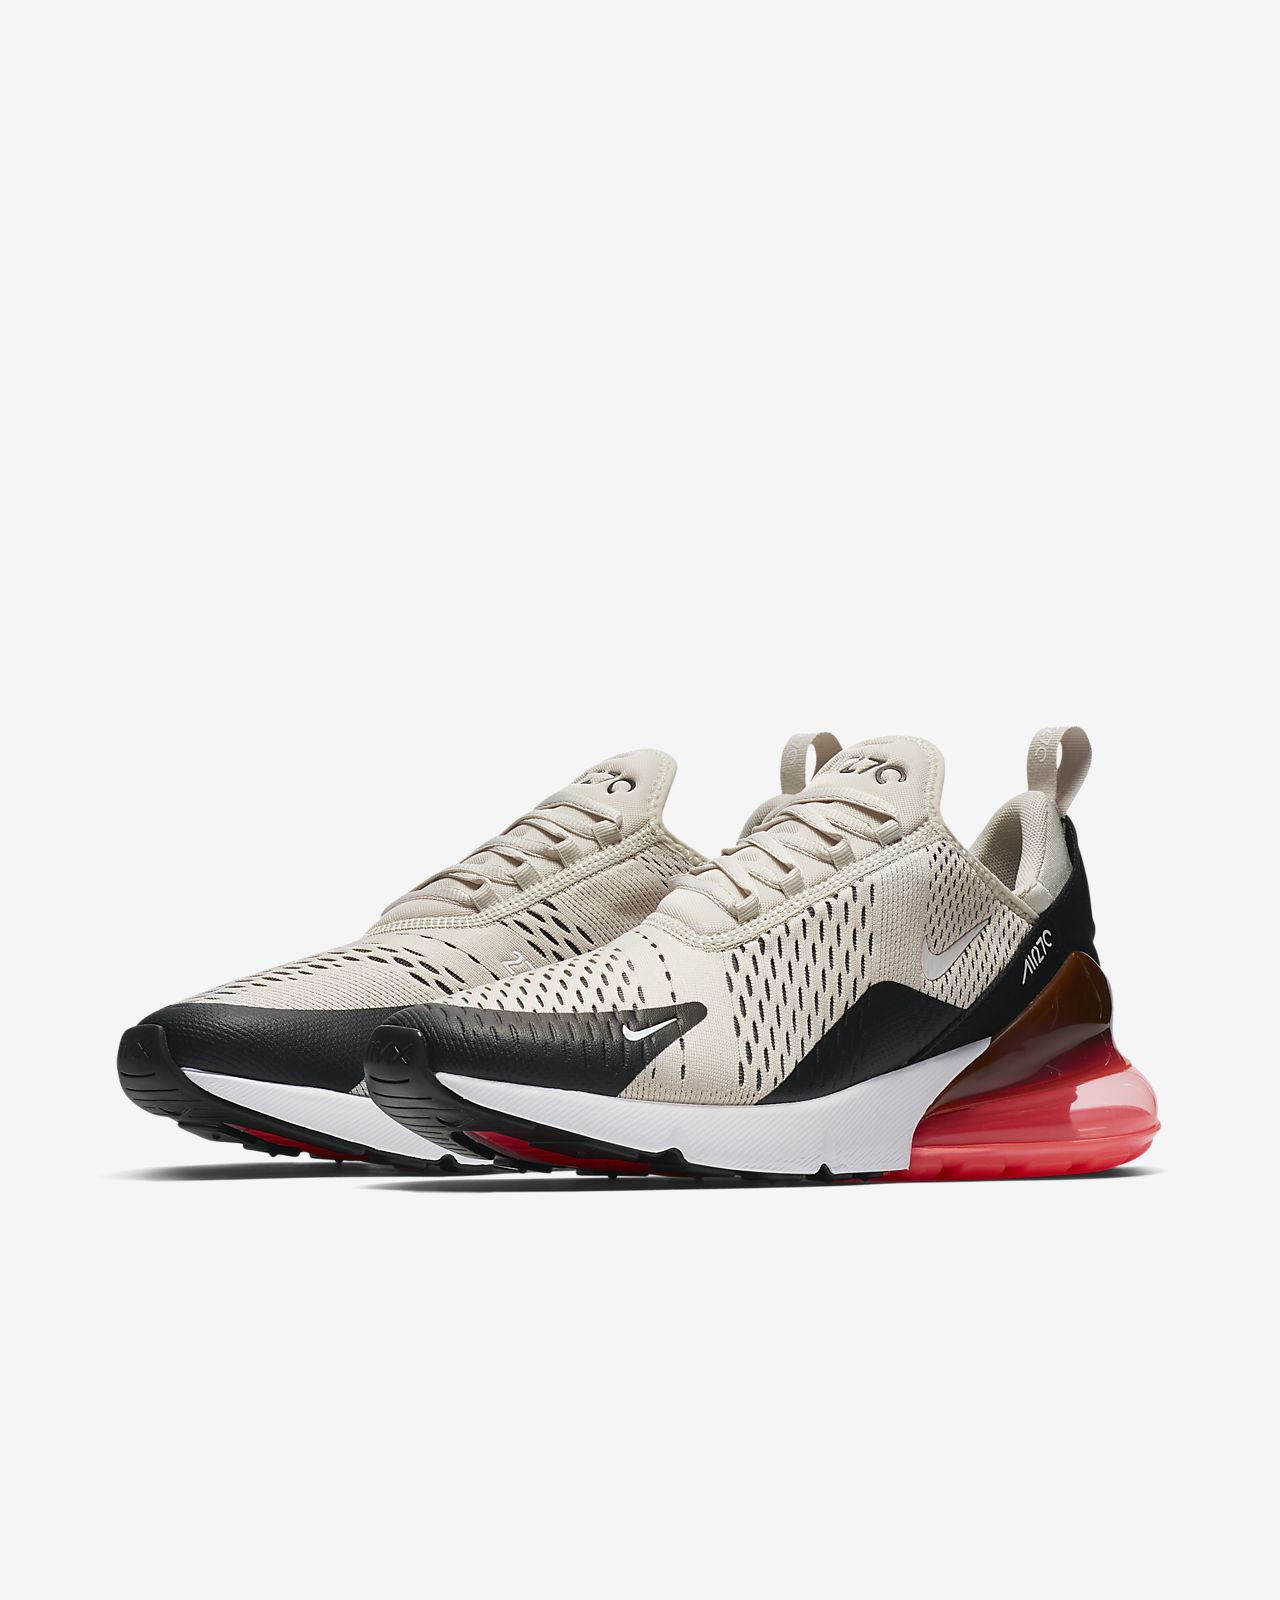 b8445b42bc Nike Air Max 270 Men's Shoe. Nike.com GB